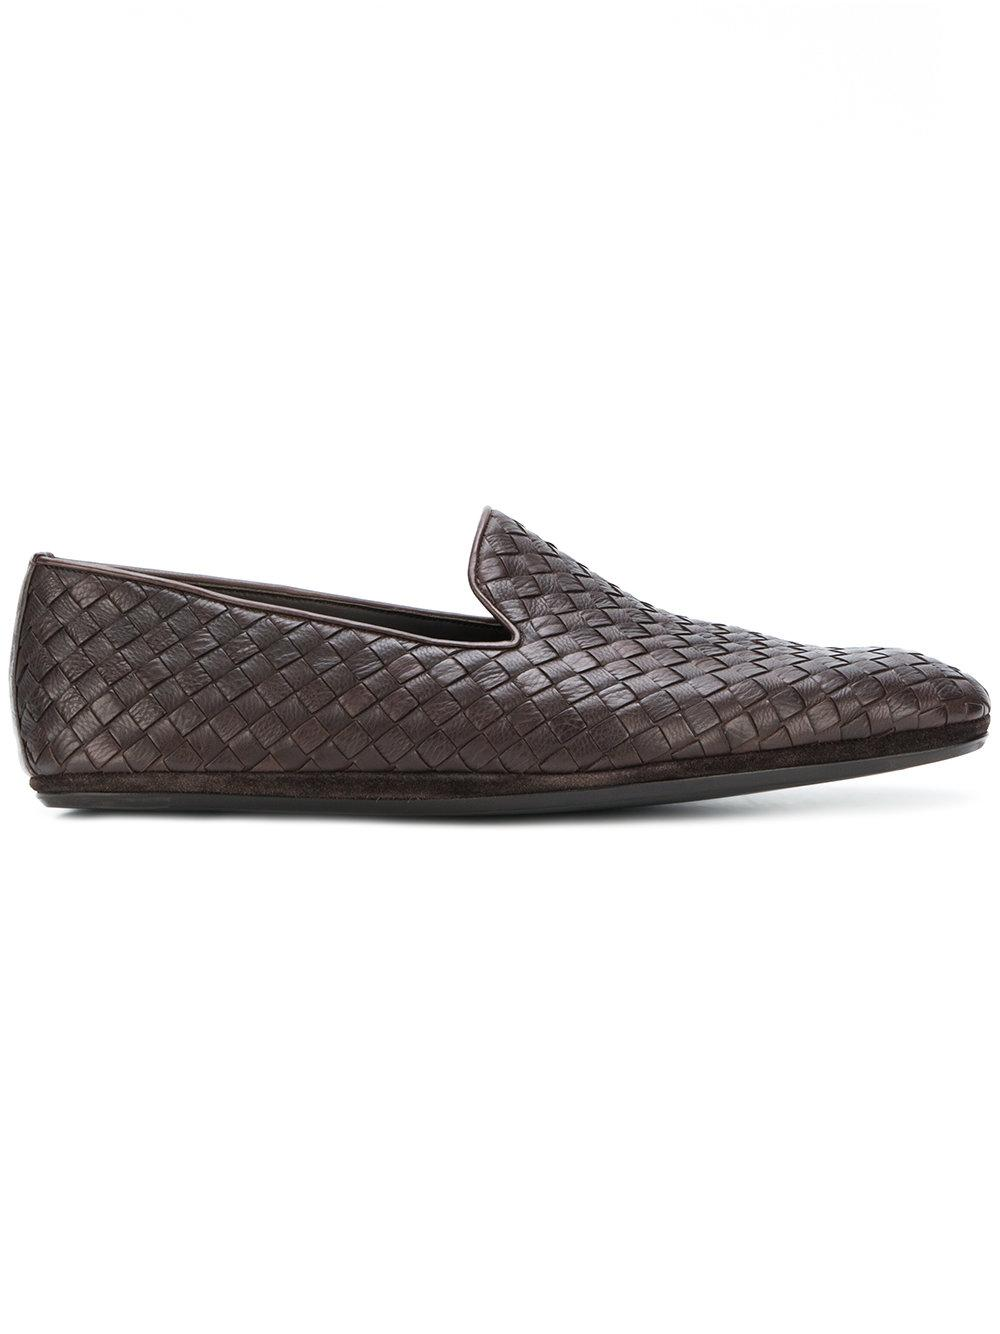 Bottega Veneta Brown